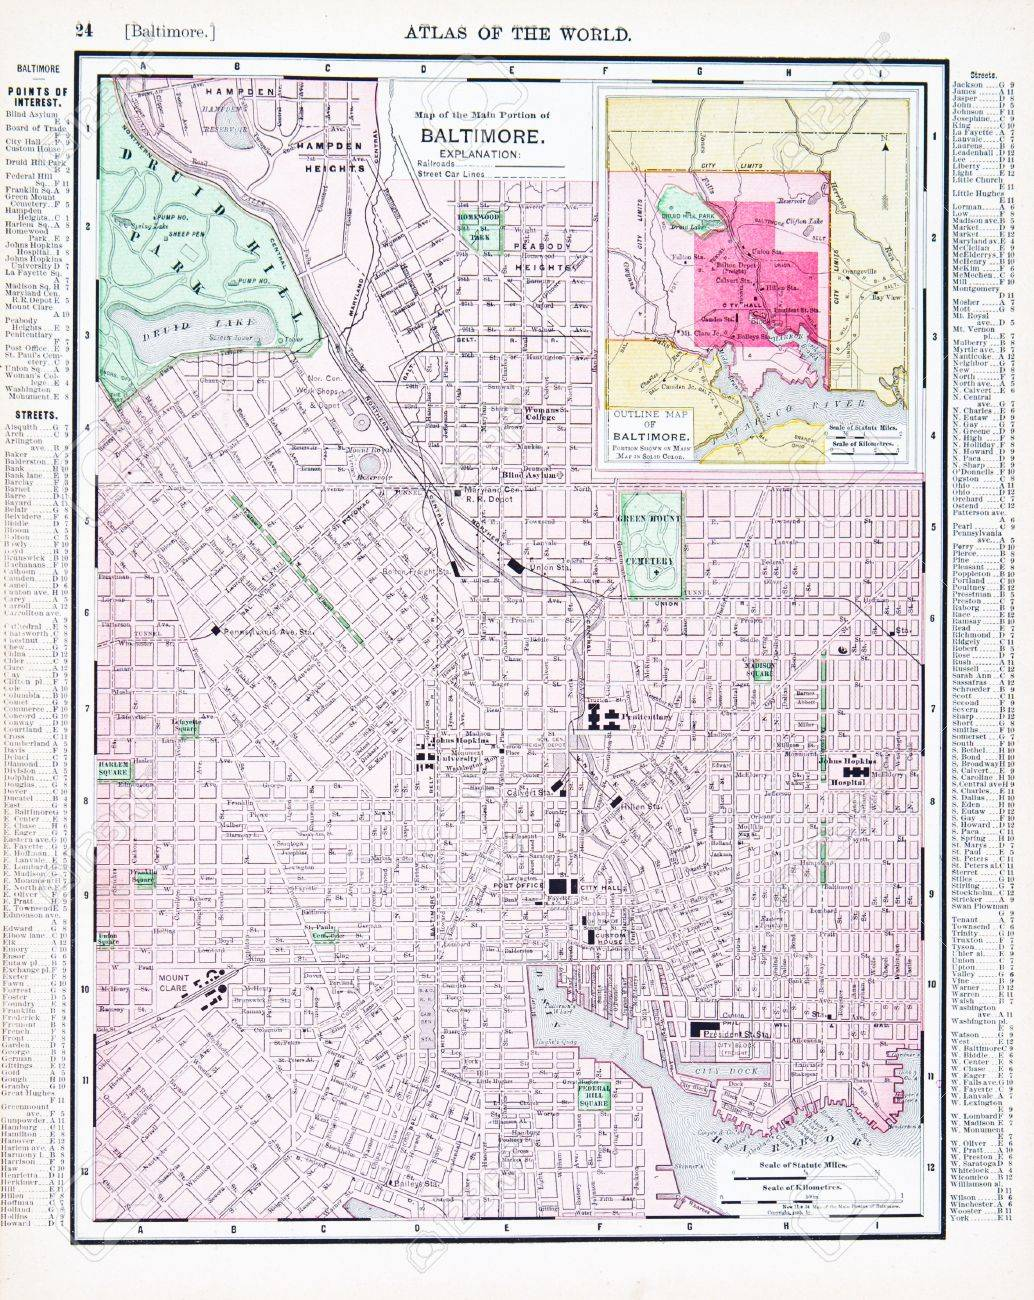 Vintage Map Of The City Of Baltimore Maryland Usa 1900 Stock